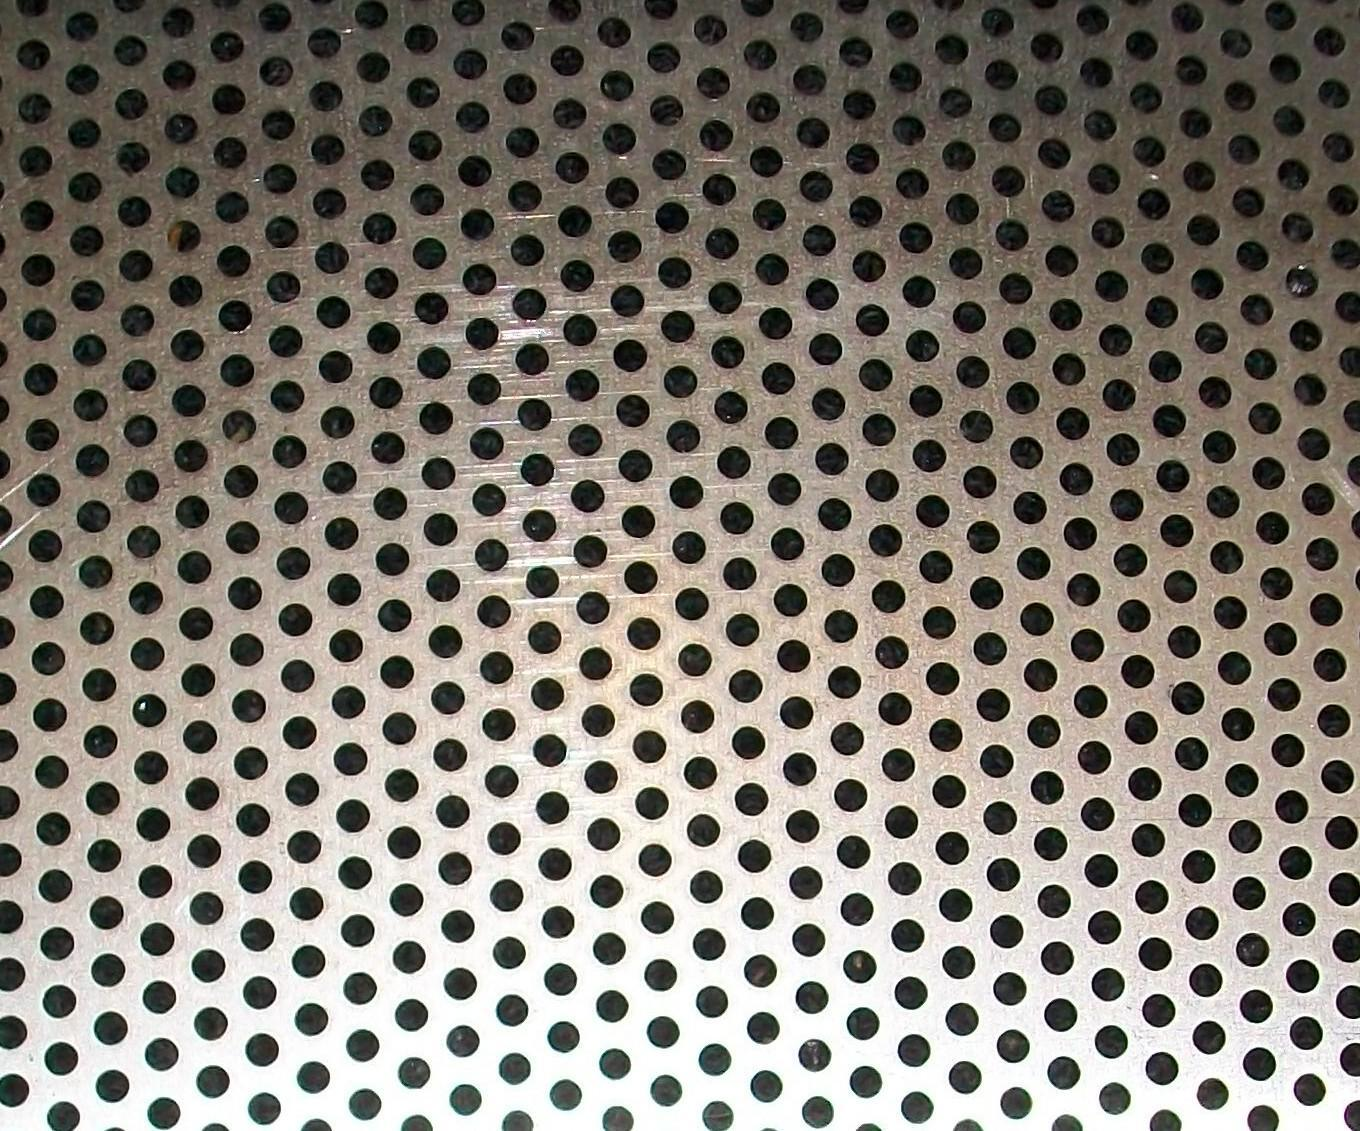 China stainless steel perforated sheet chequered plate china